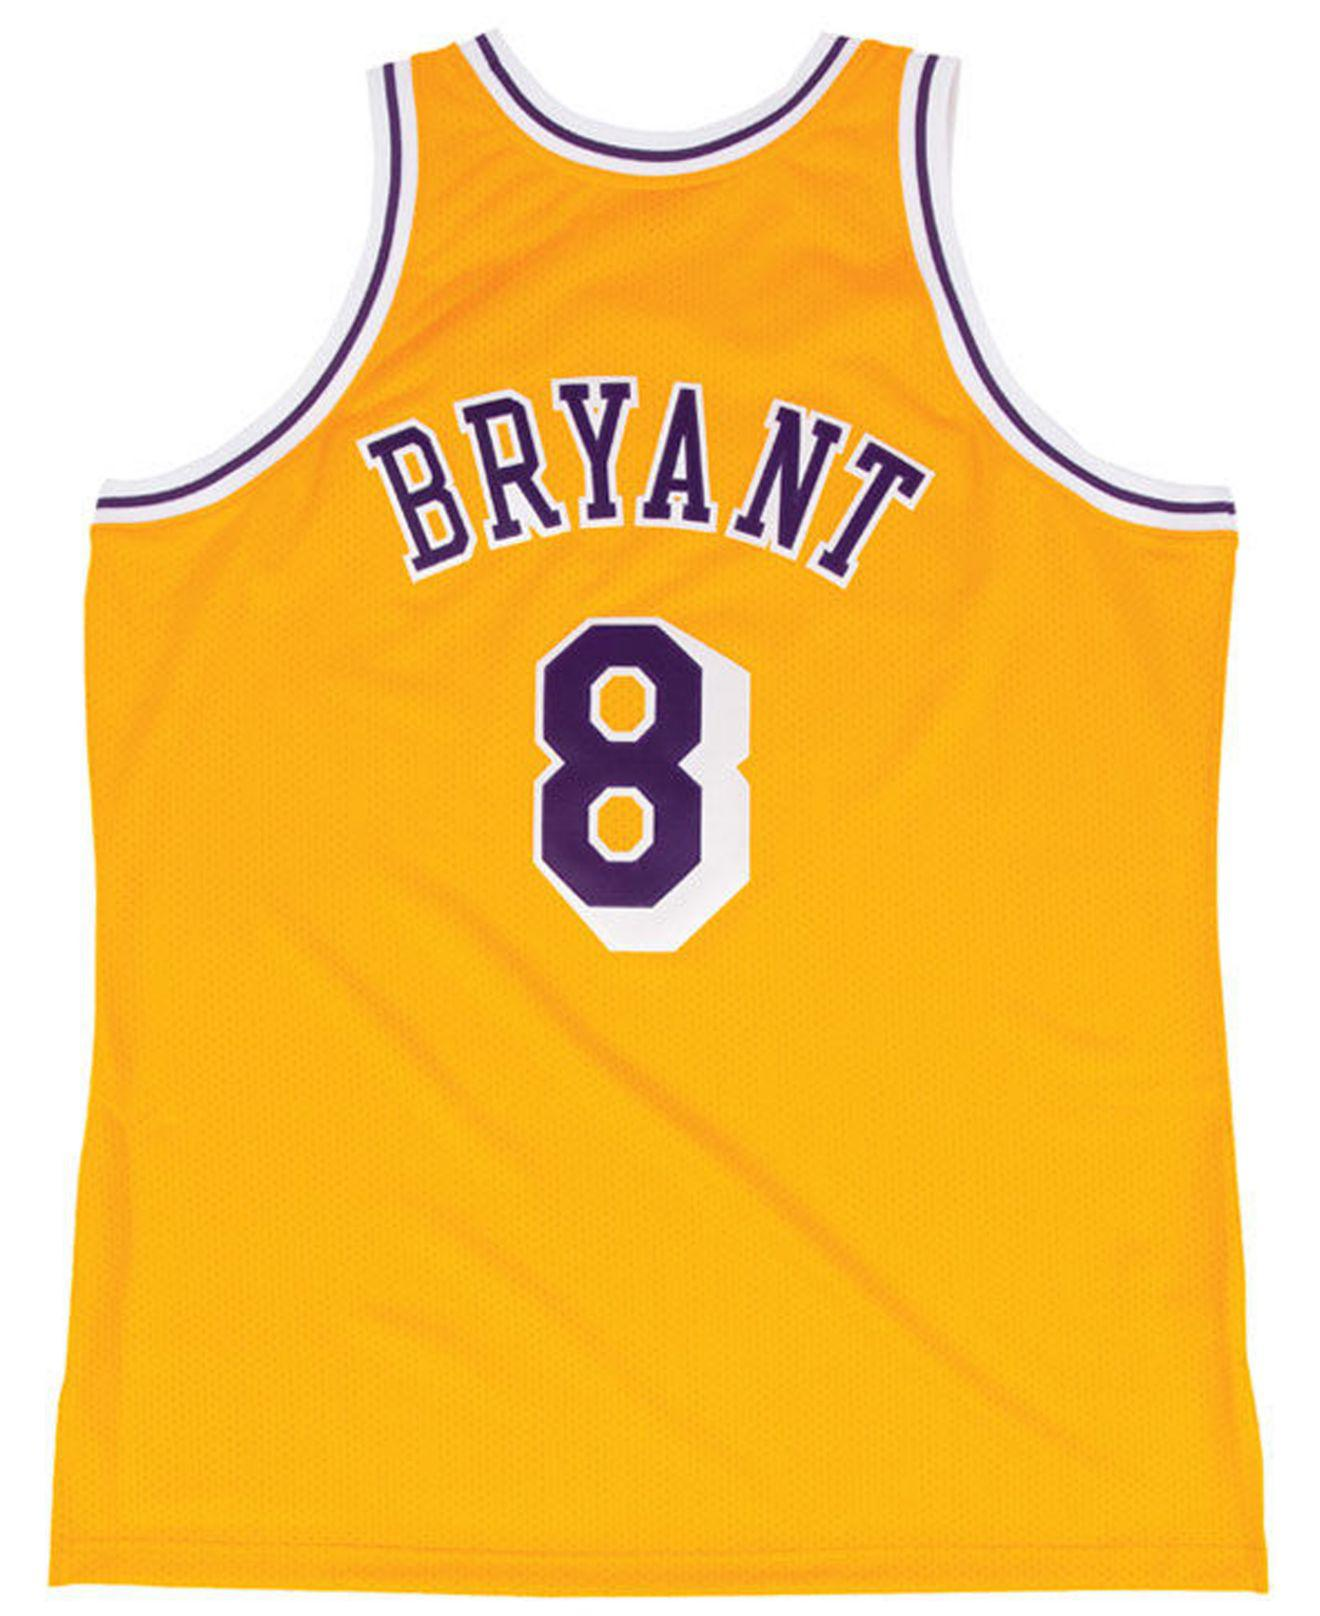 c83152e85 Mitchell   Ness Kobe Bryant Los Angeles Lakers Authentic Jersey in ...